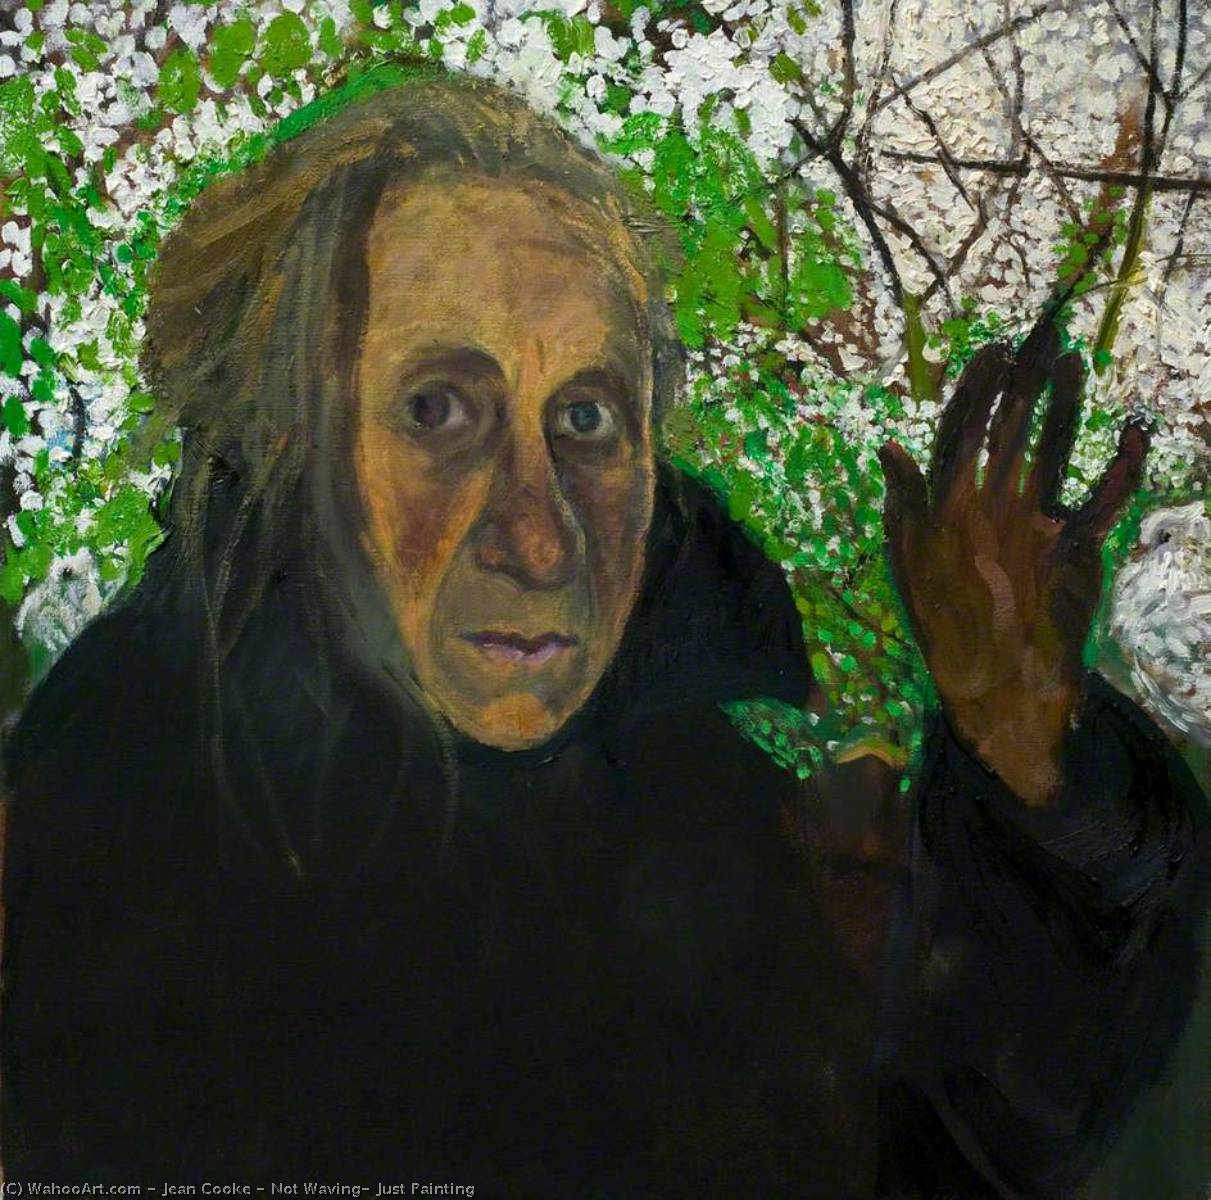 Wikioo.org - The Encyclopedia of Fine Arts - Painting, Artwork by Jean Cooke - Not Waving, Just Painting